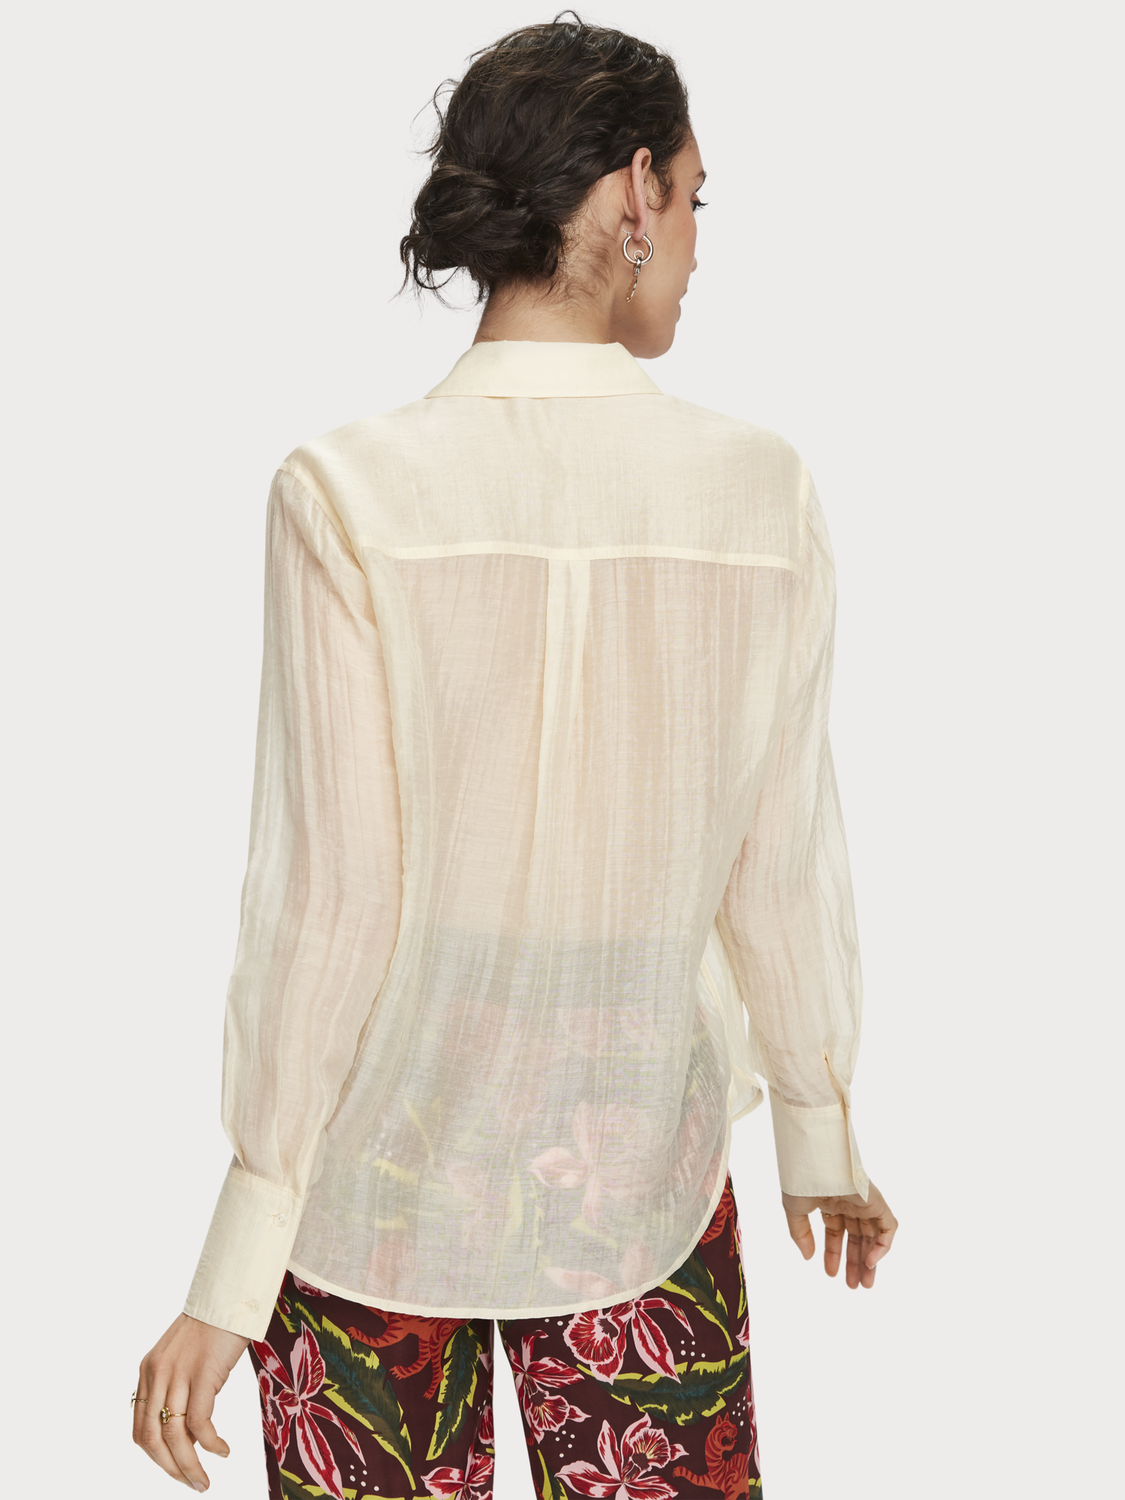 Damen Transparentes Shirt